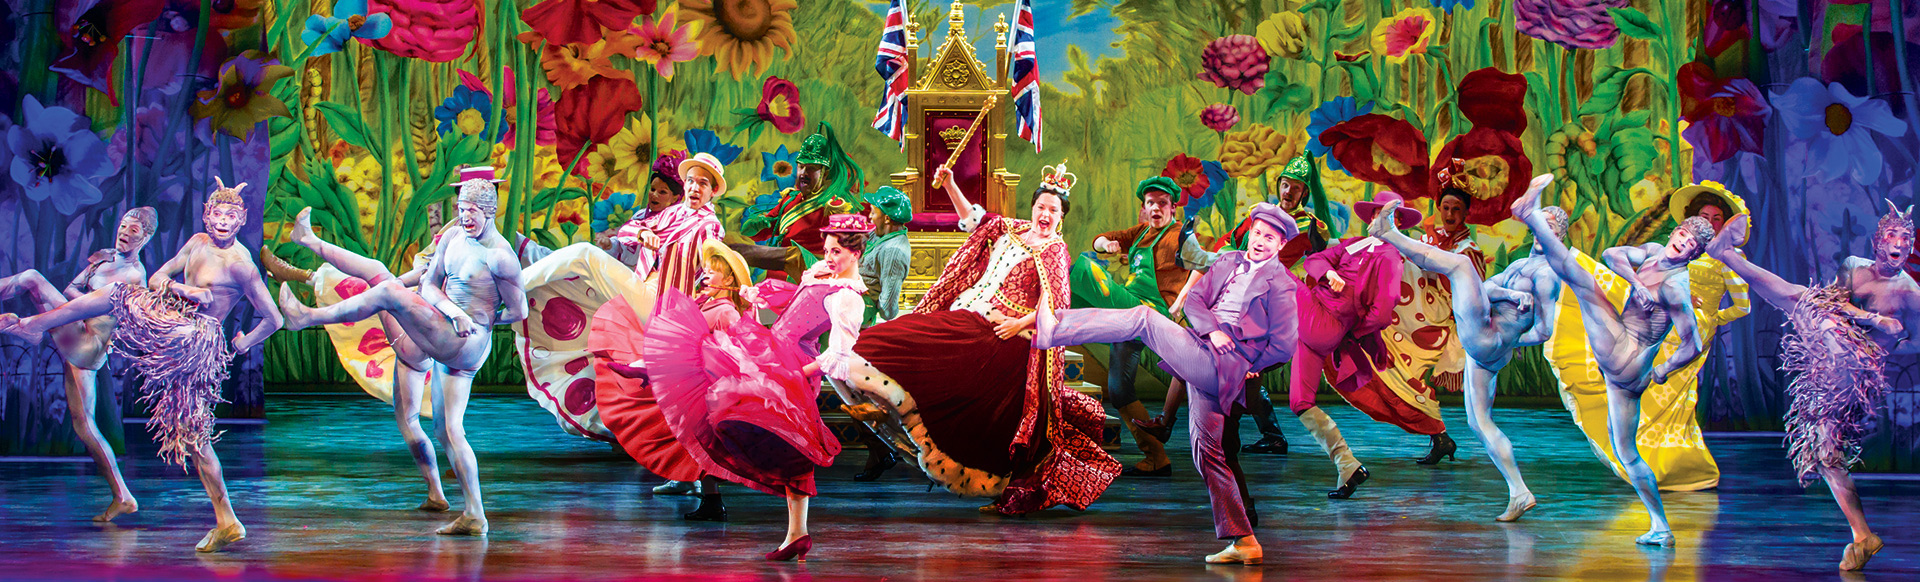 Cast of Mary Poppins The Musical dancing on stage